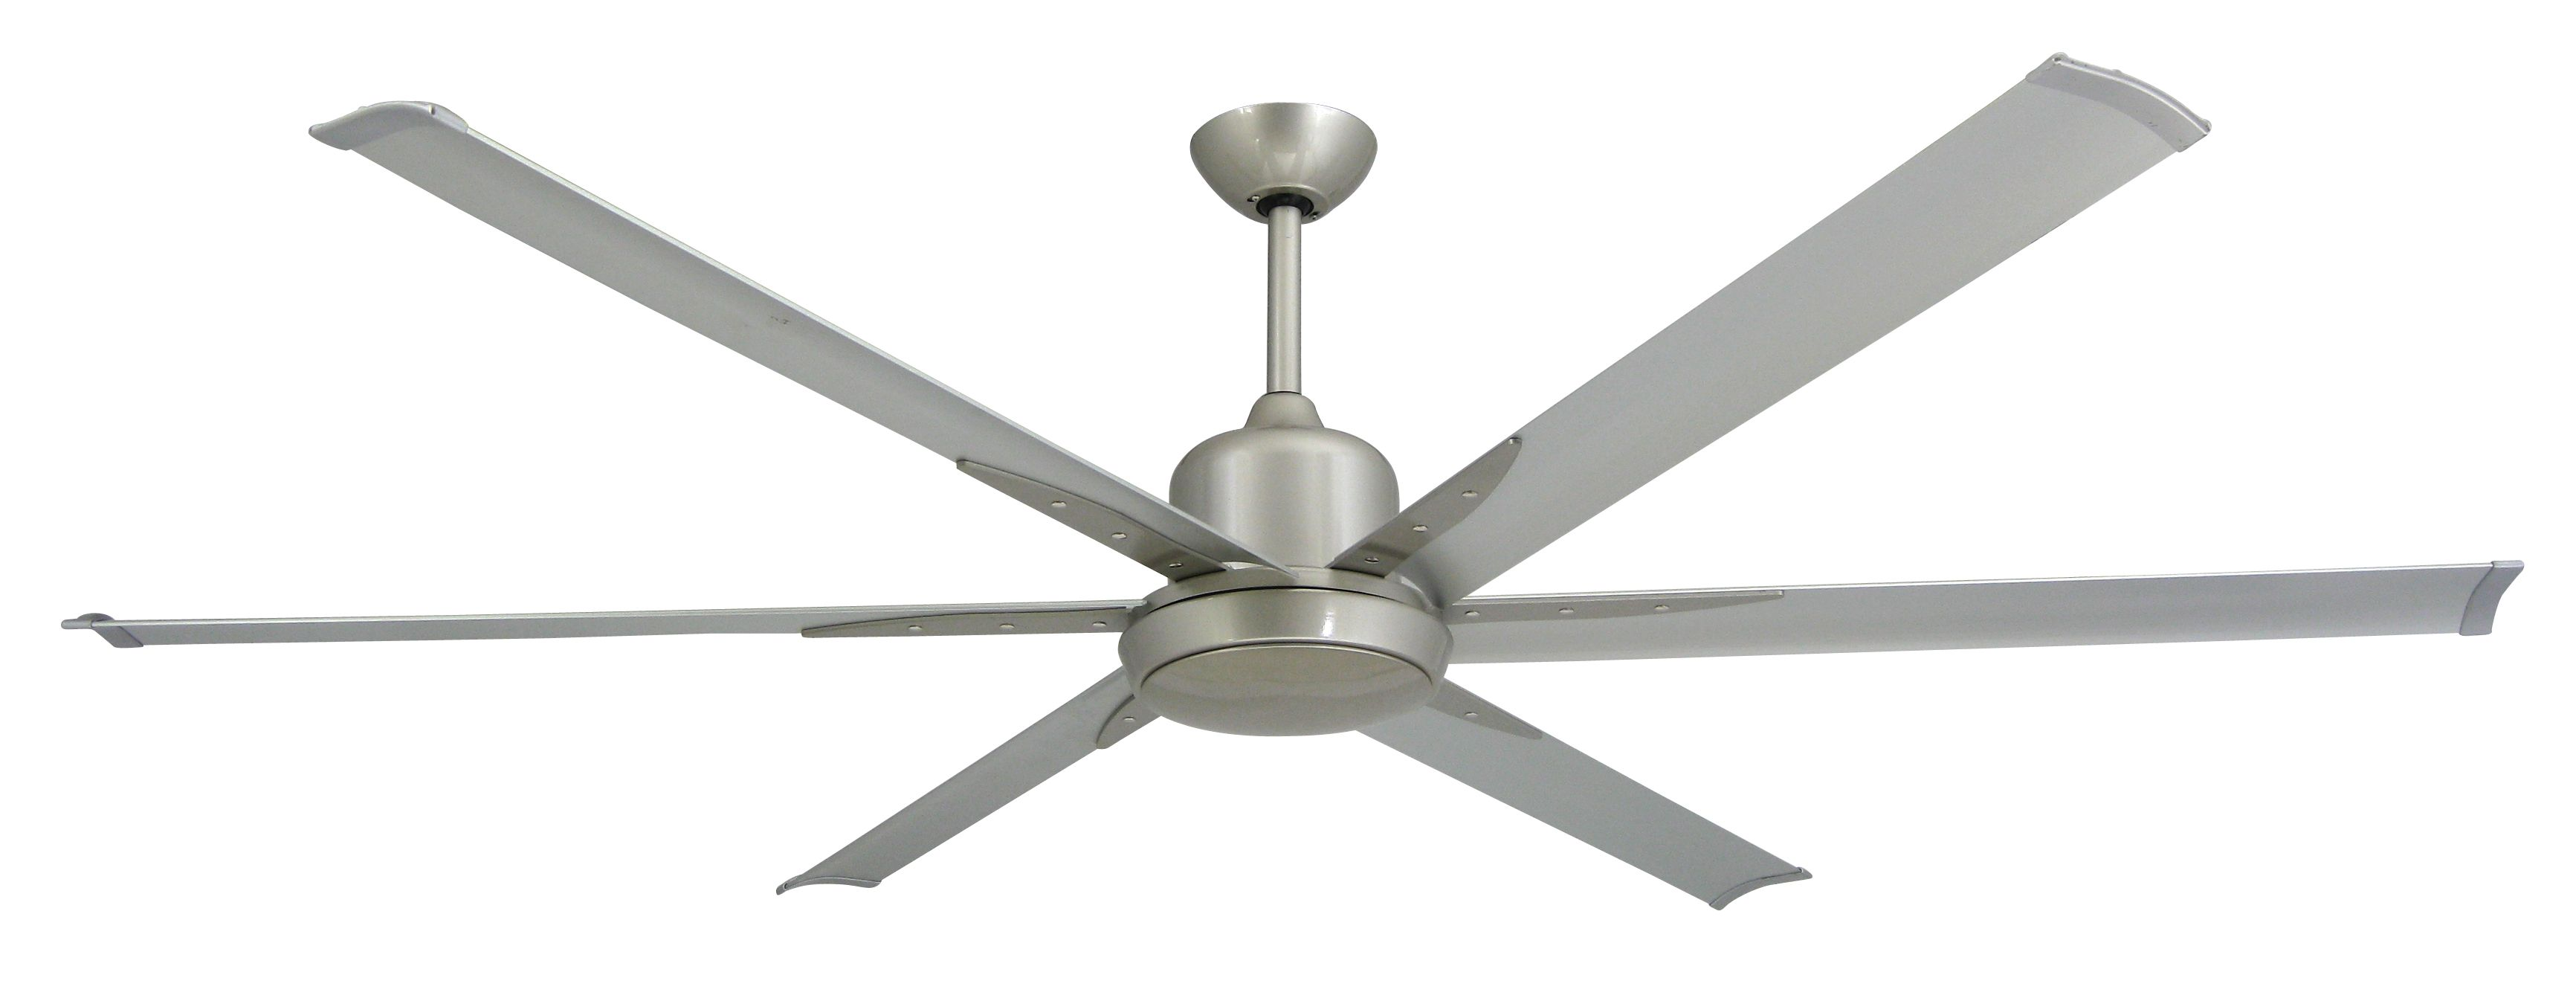 TroposAir Titan Brushed Nickel Industrial Ceiling Fan with